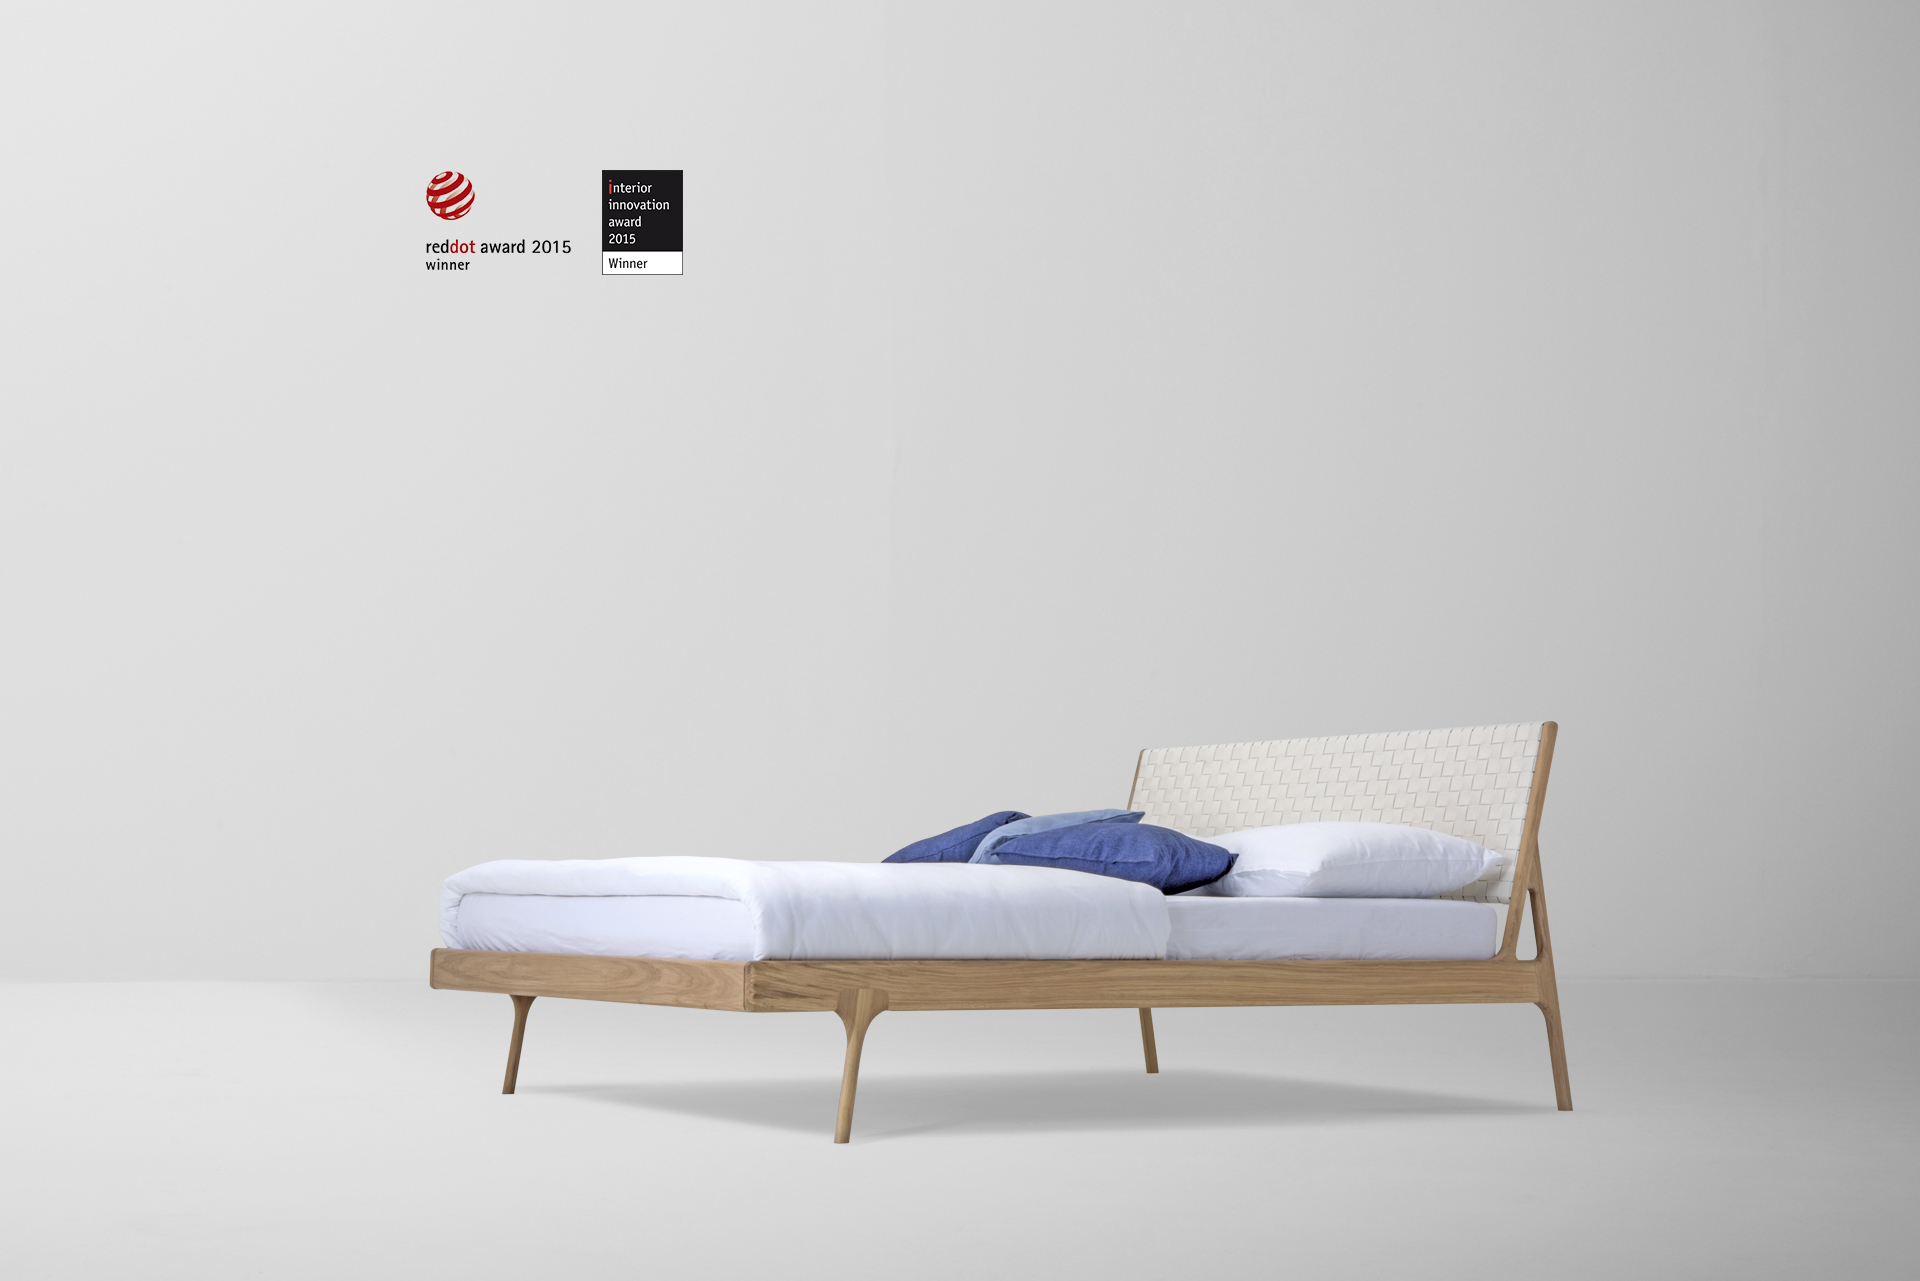 Fawn bed - Red Dot Award 2015 | Interior Innovation Award 2015